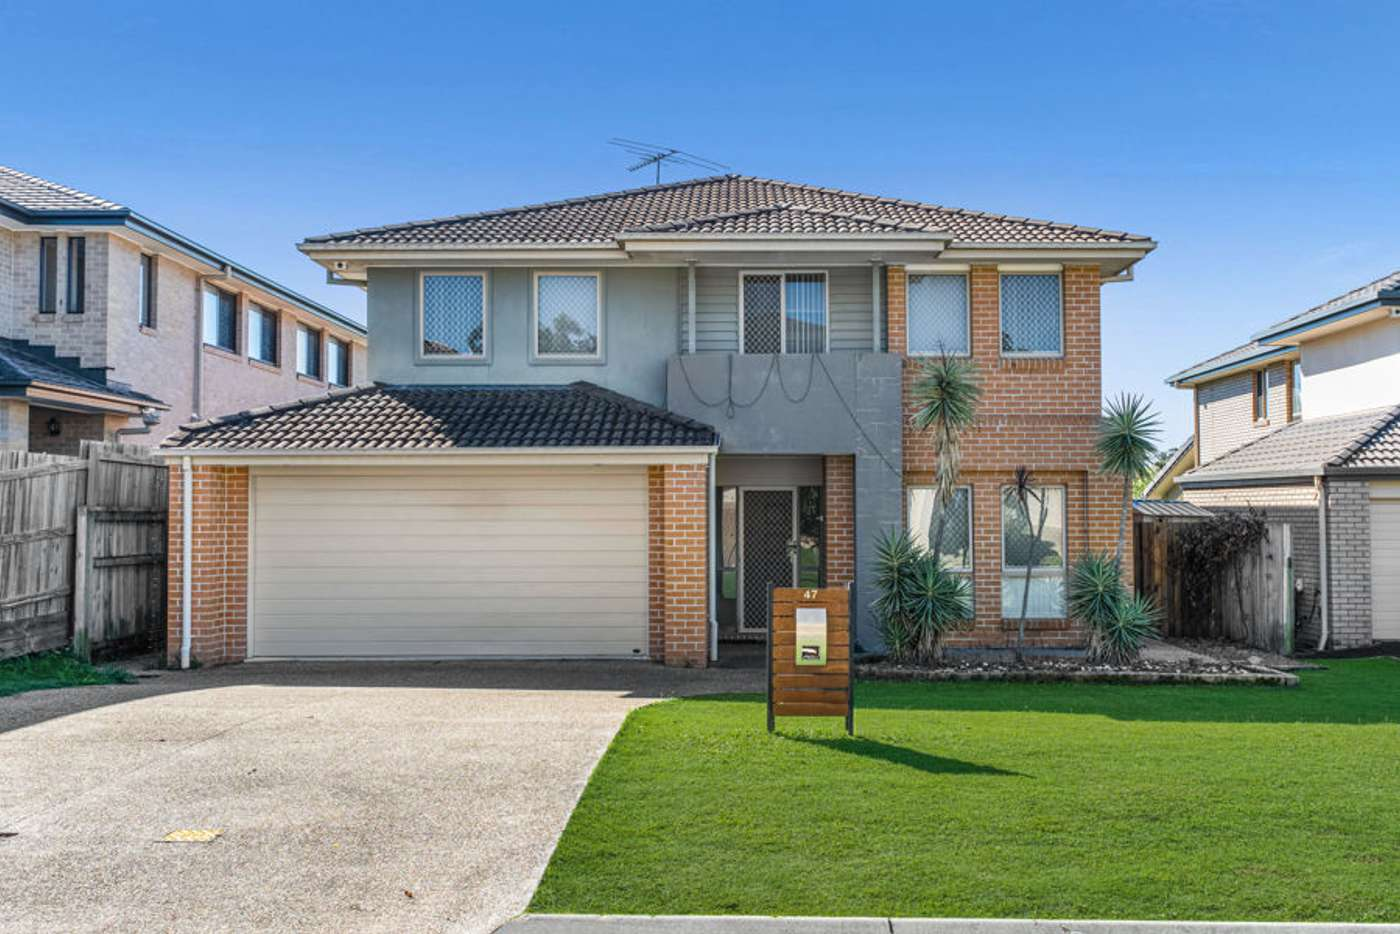 Main view of Homely house listing, 47 Crane crescent, Runcorn QLD 4113